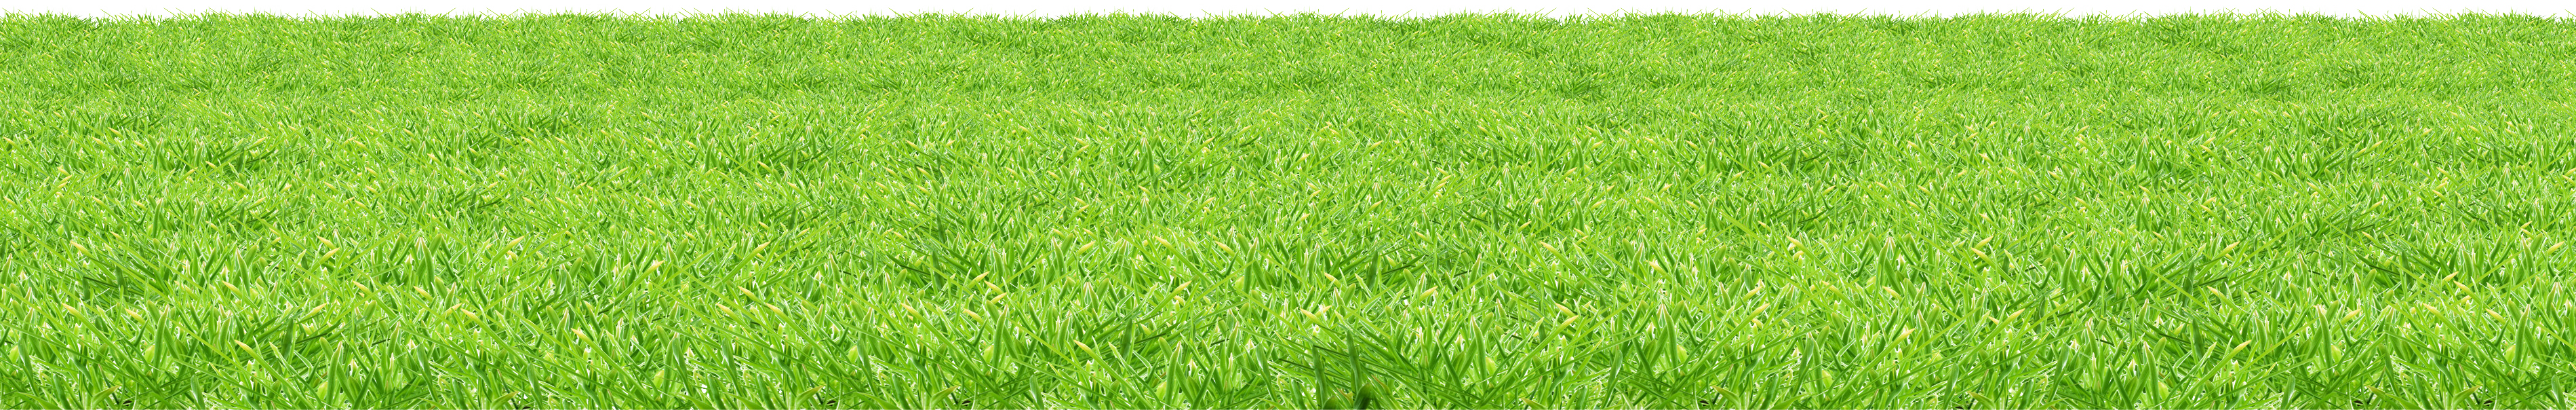 Field clipart dirt field. Grass vision churl co